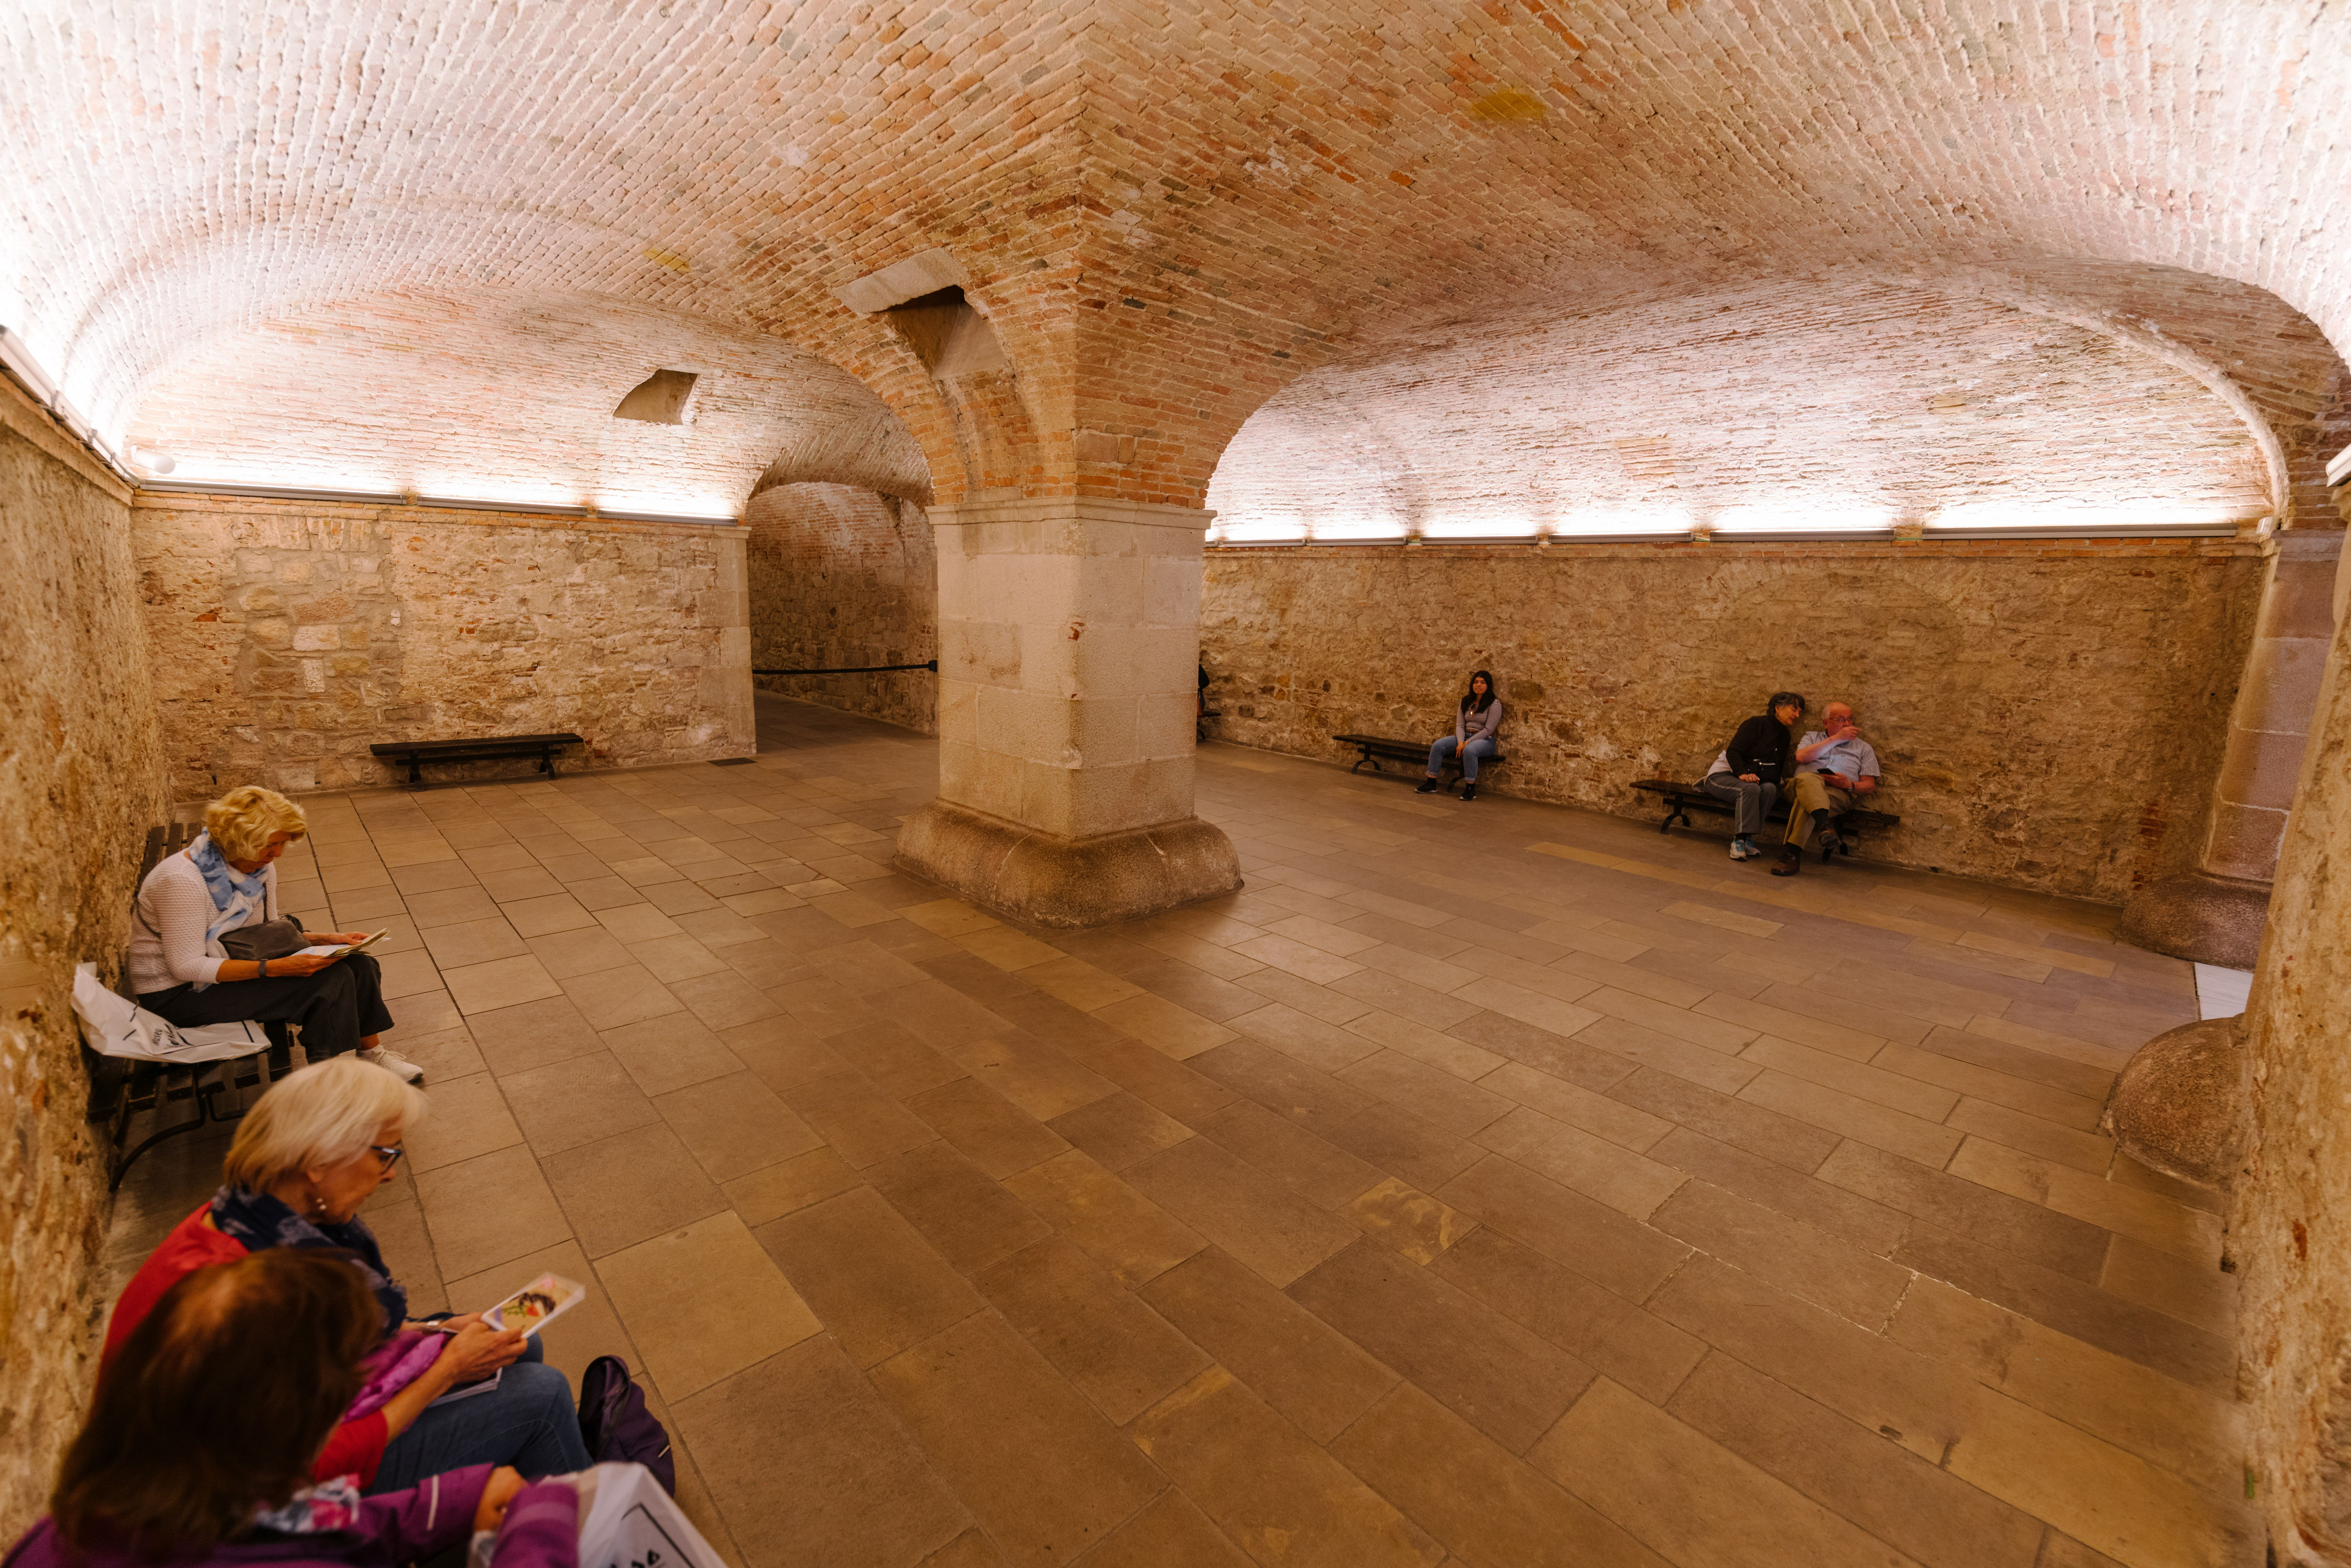 A large arched room with people sitting on the side inside the Picasso Museum